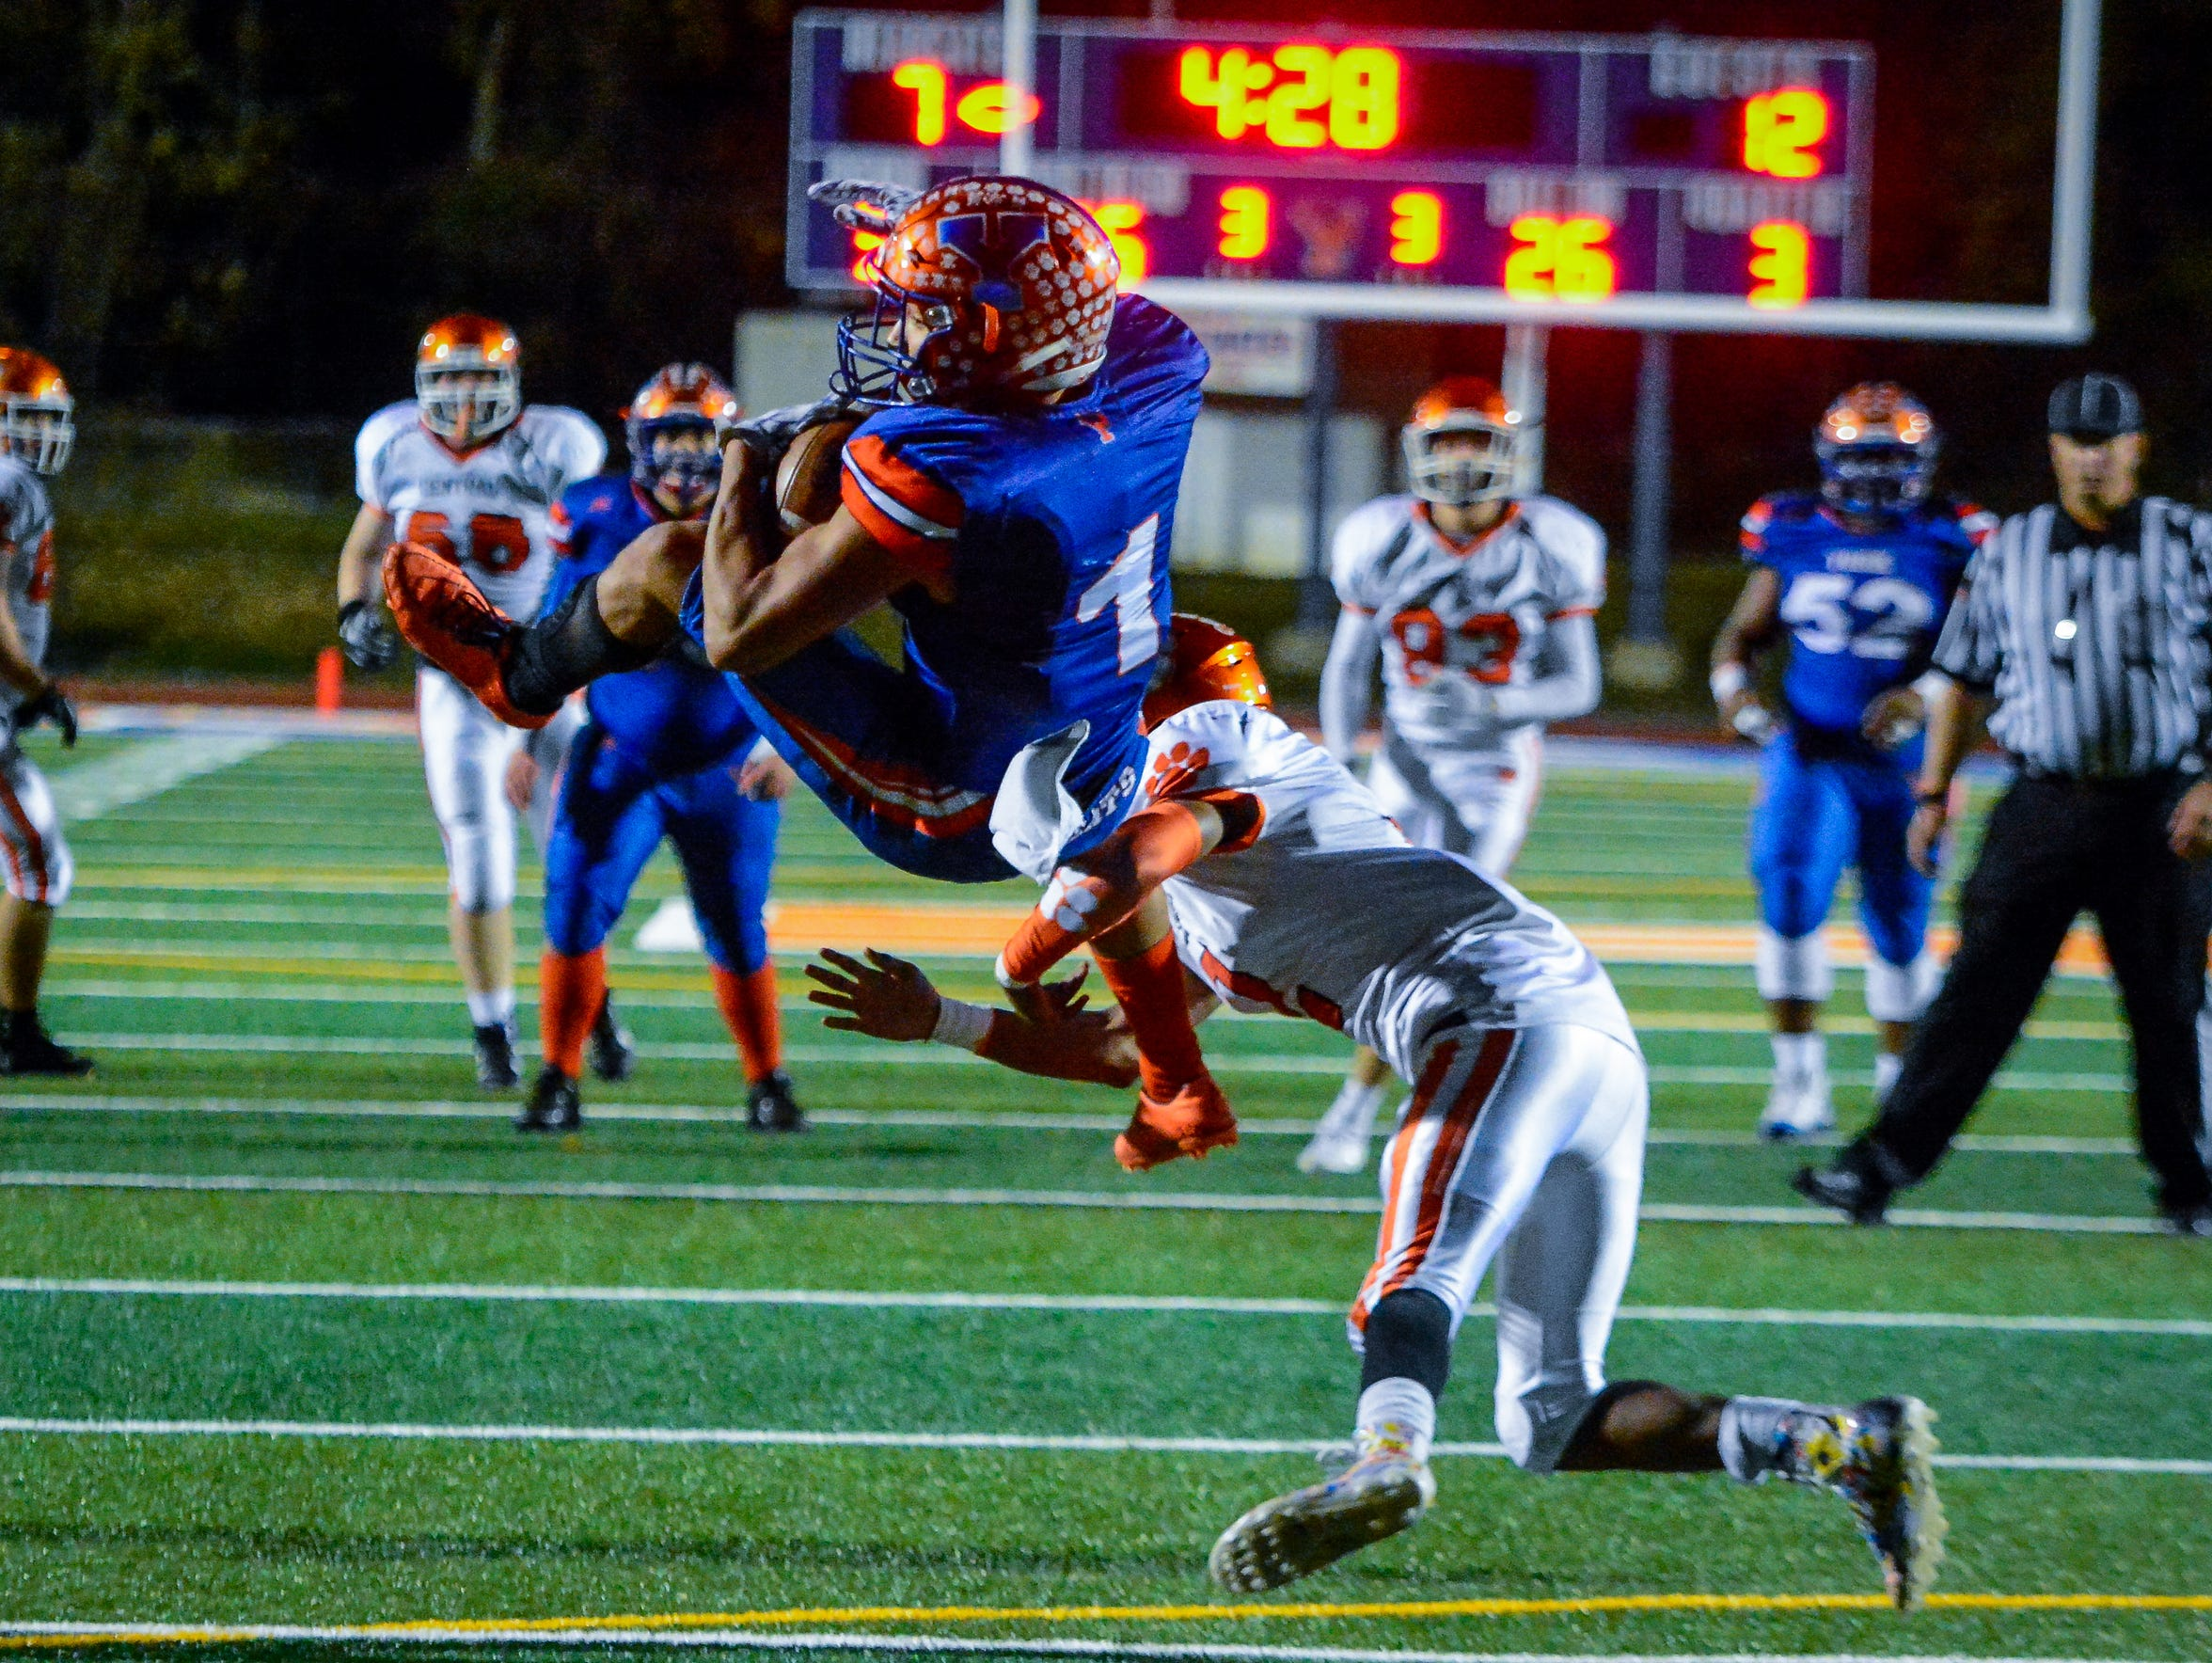 York High's Dayjure Stewart nearly flips into the end zone in a game last season. DISPATCH FILE PHOTO.